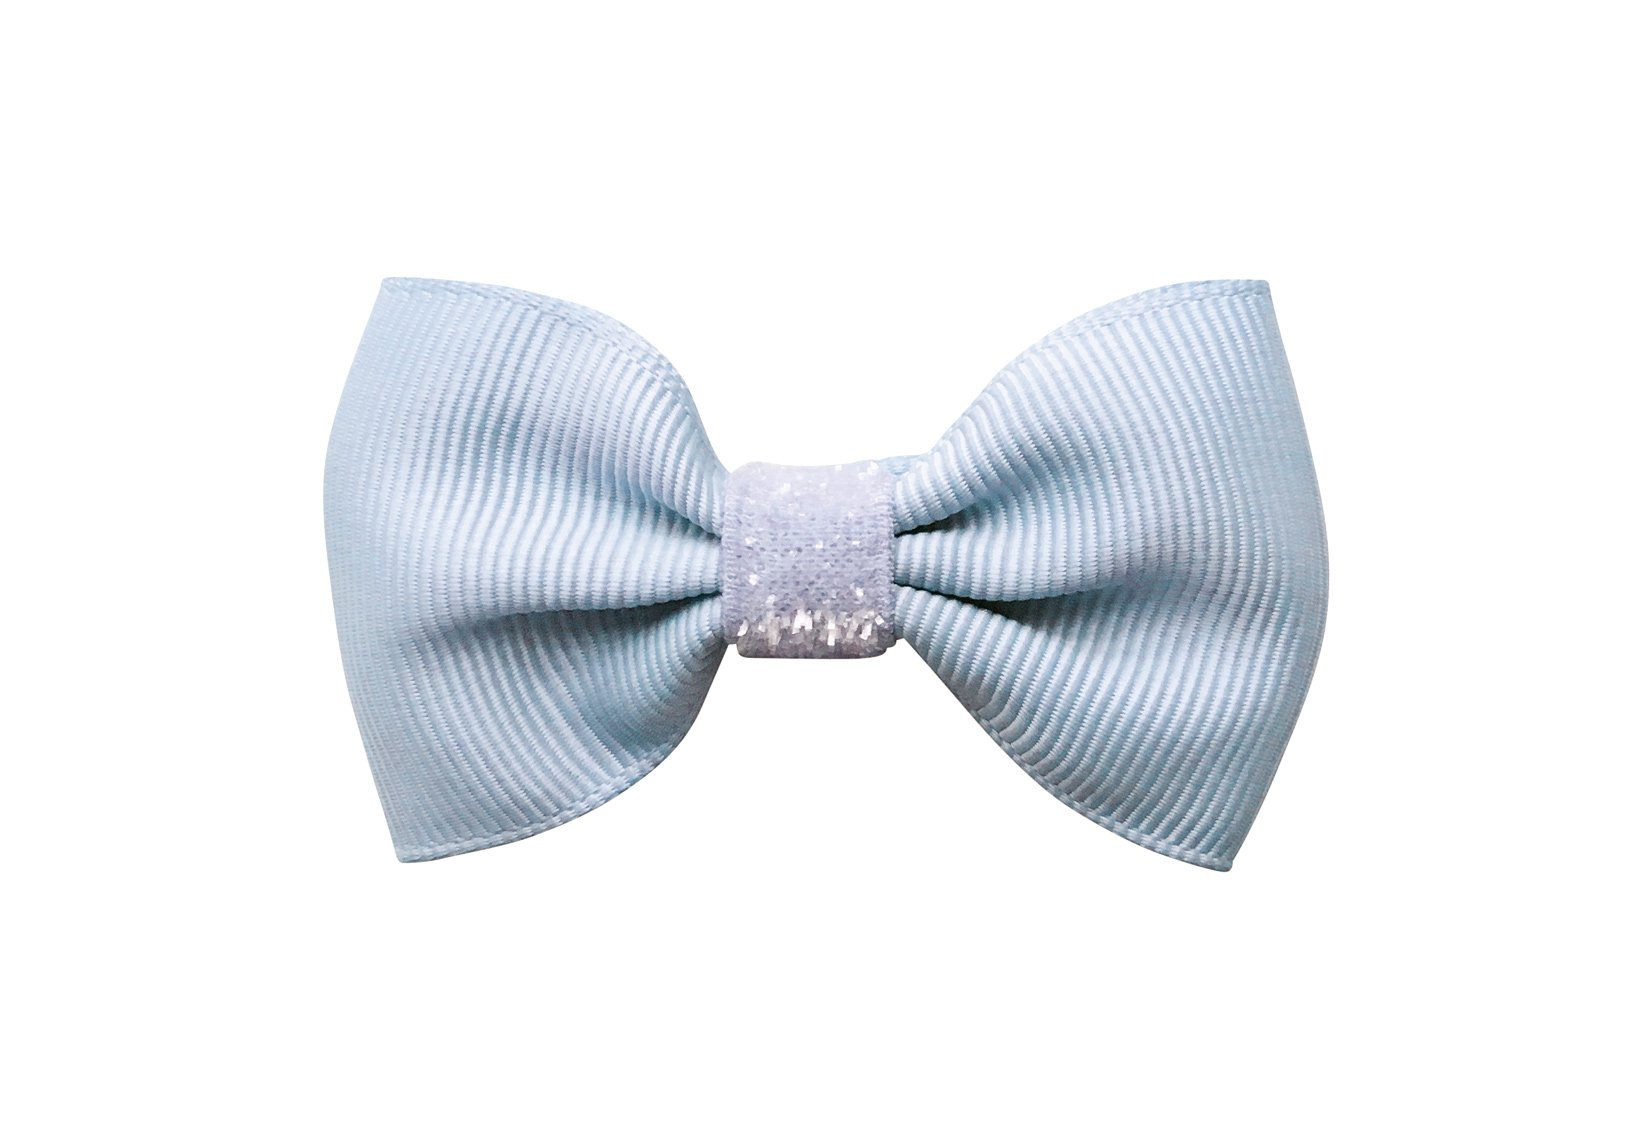 Colored Small Bowtie Bow with Colored Glitter Middle – Alligator Clip